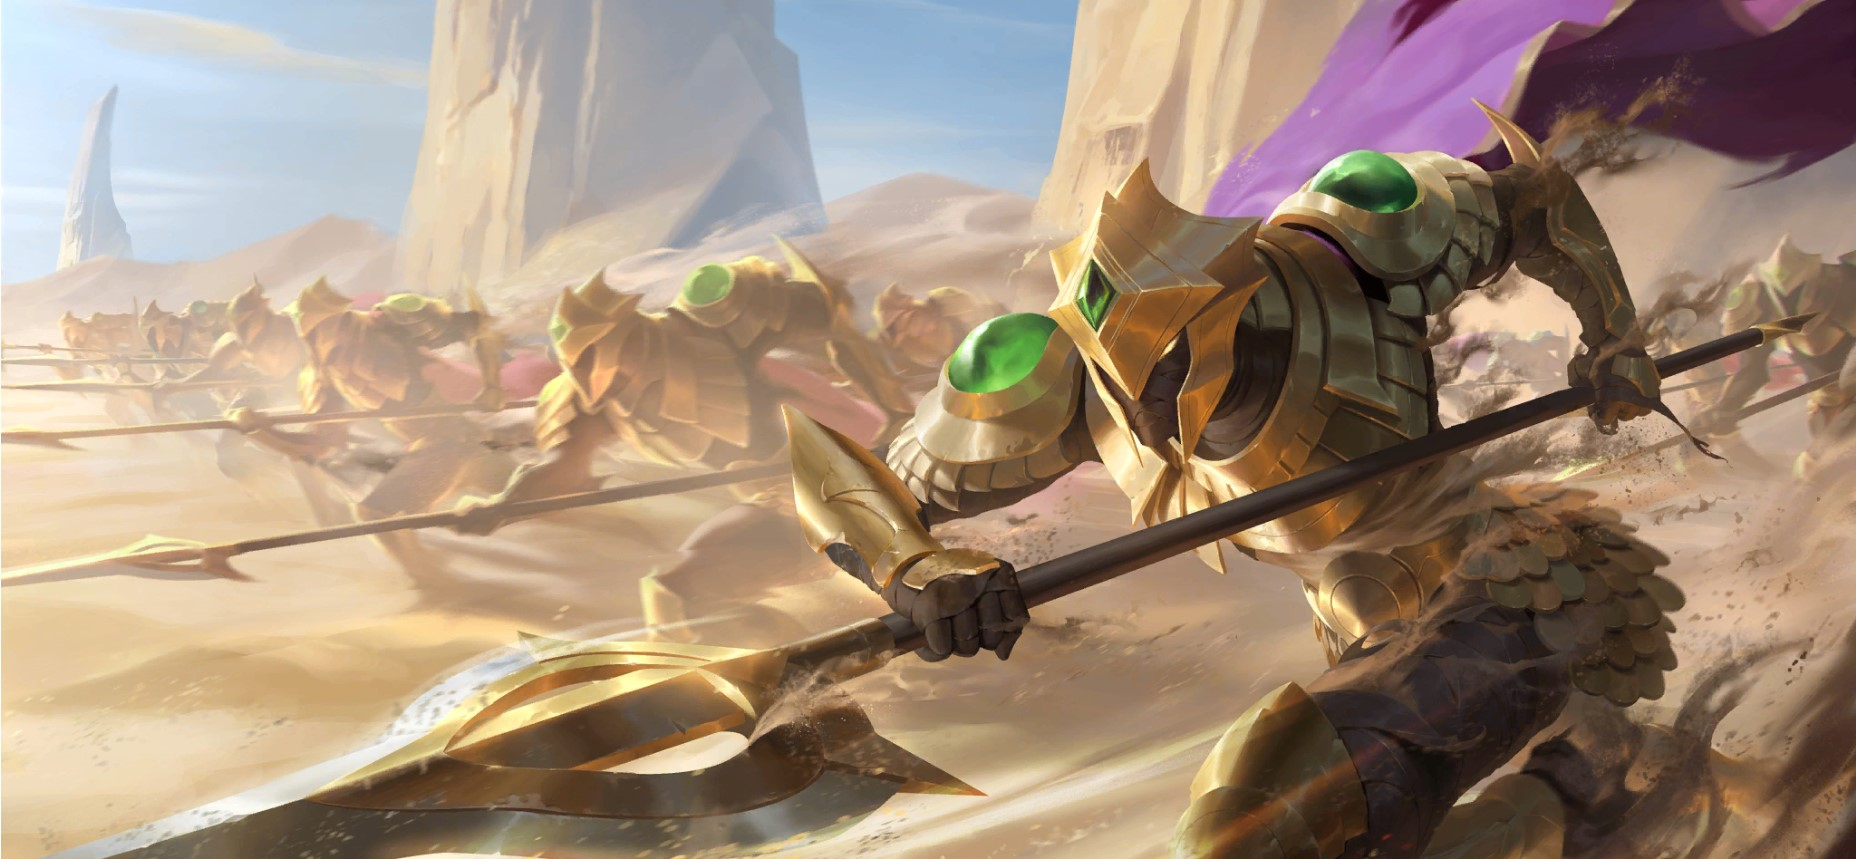 Empires of the Ascended LoR Card Impressions: Pre-Azir (Sand Soldier, Emperor's Dais, and More)